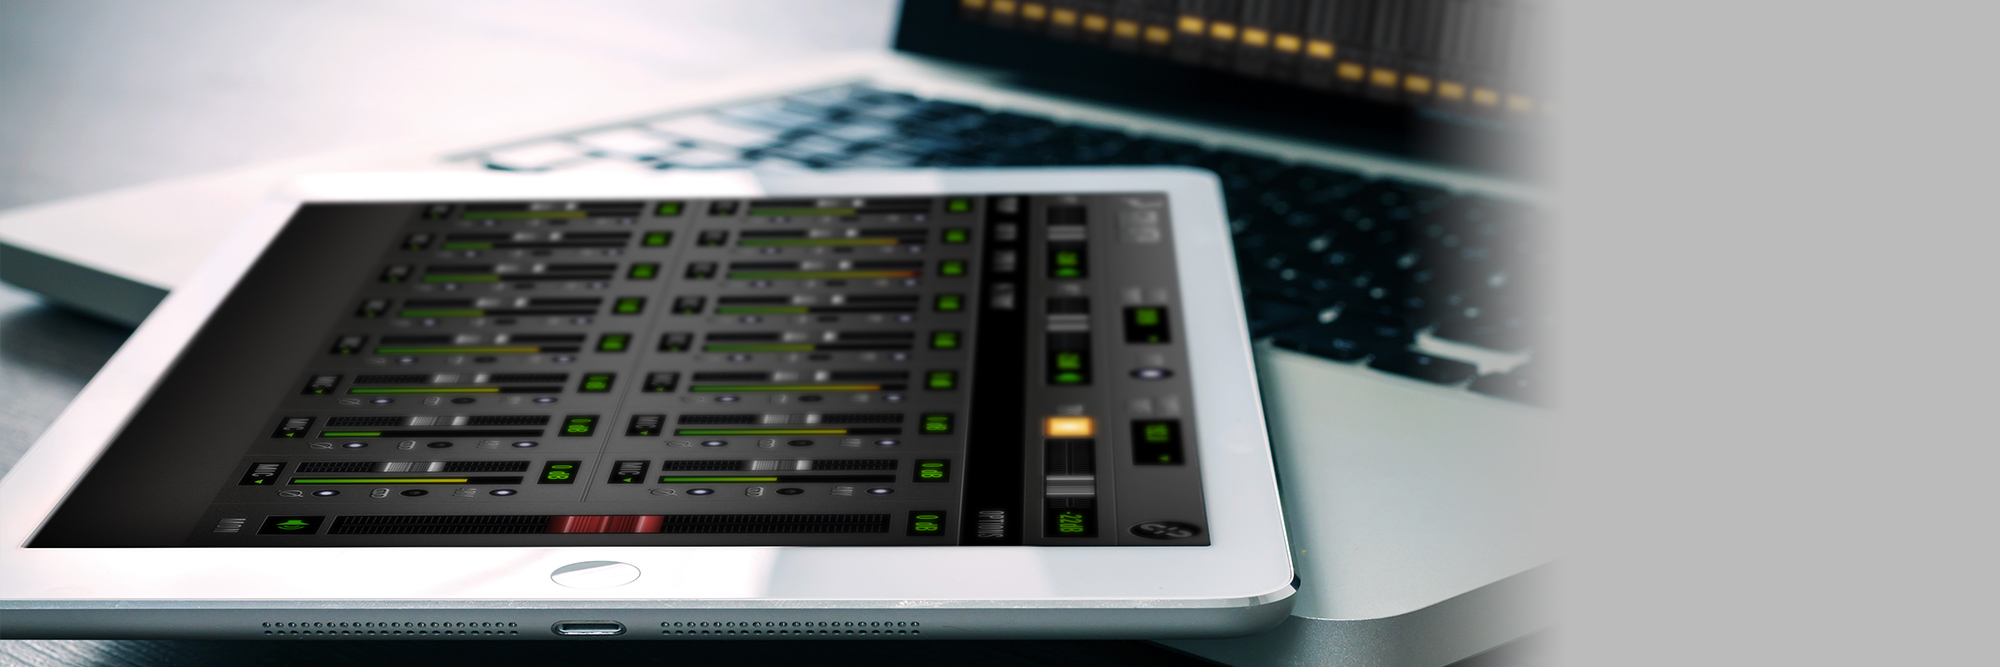 Antelope Audio just launched remote control apps for some of their interfaces